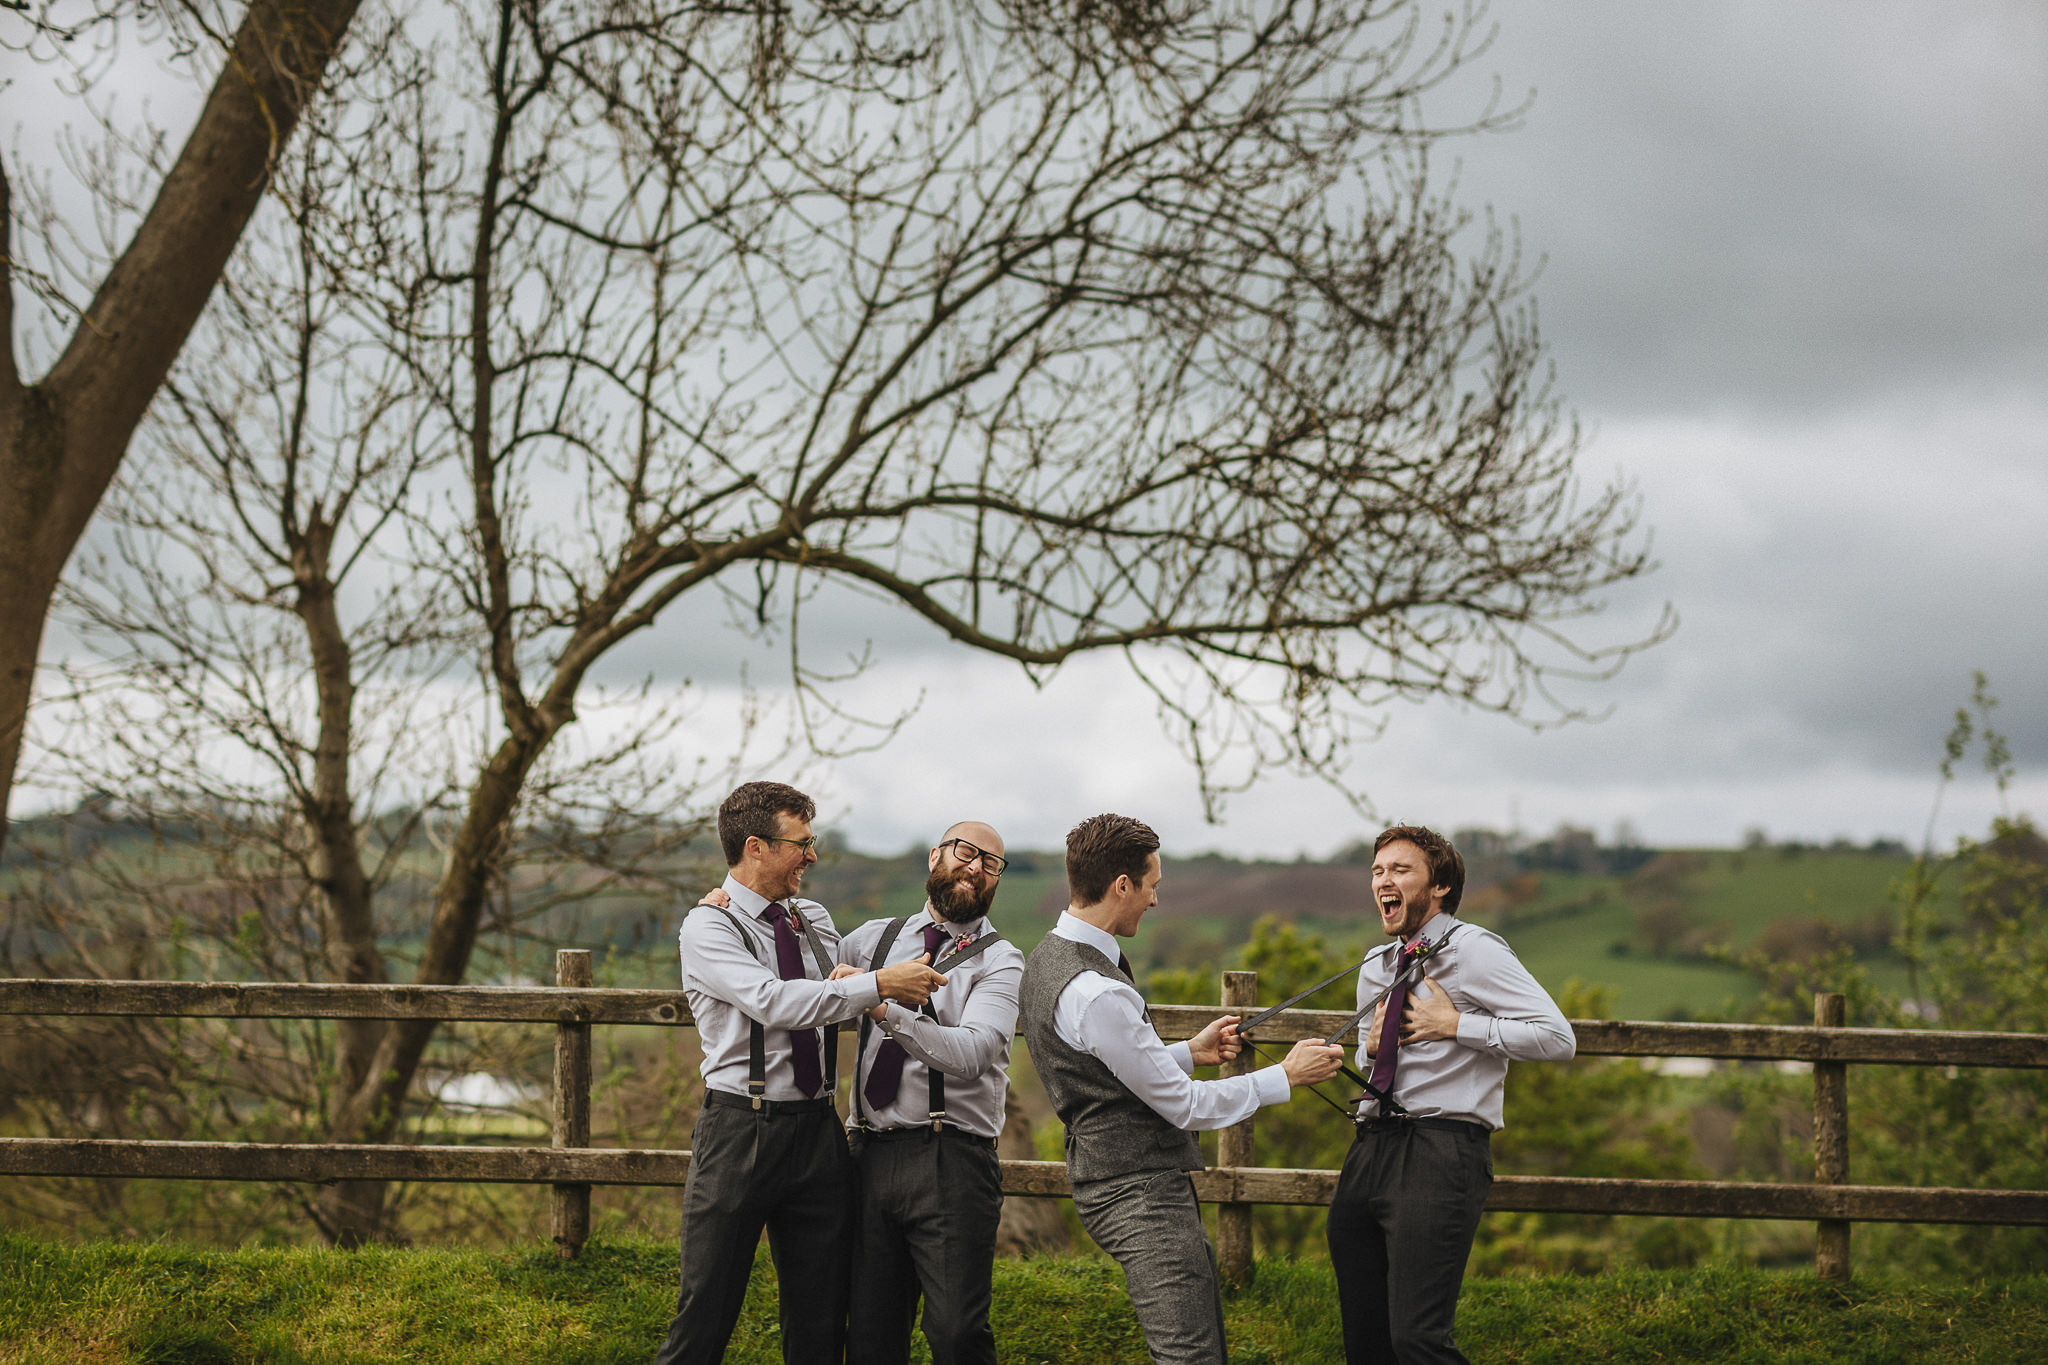 plas-isaf-corwen-north wales wedding-photography-photographer-91055